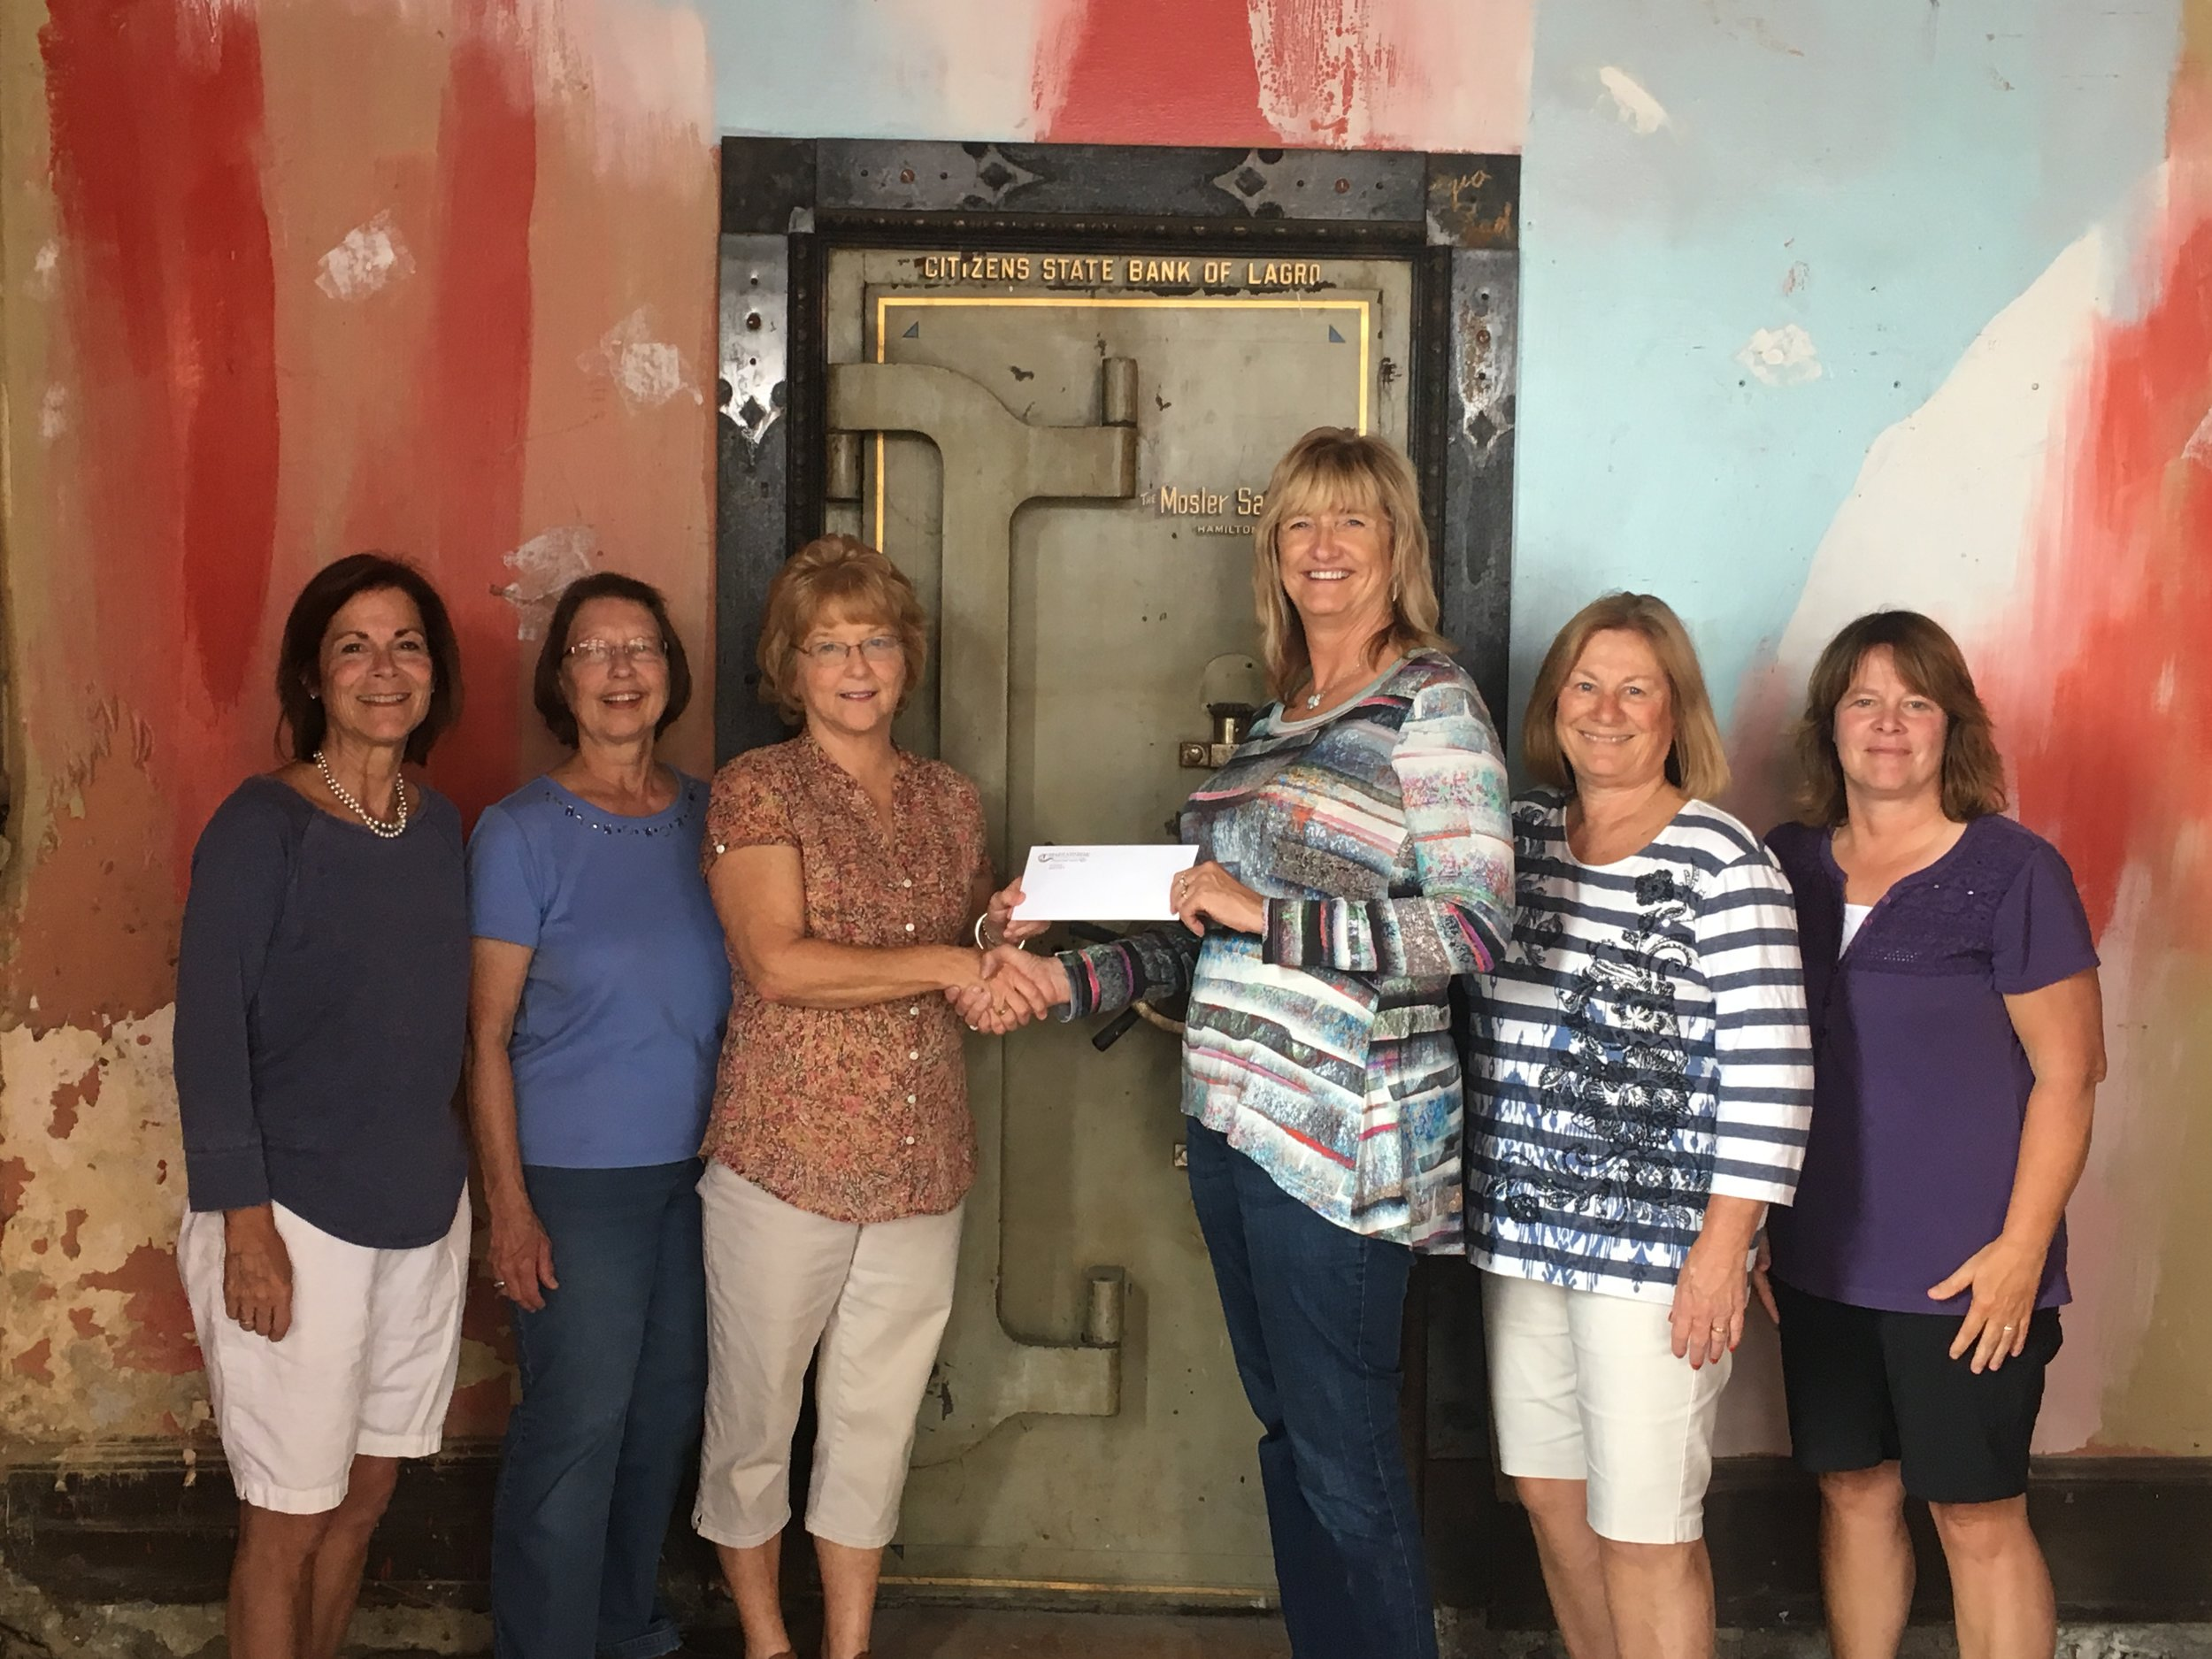 The Lagro Canal Foundation receives a grant from Operation Round. From left to right: Jane Swanquist, Deborah Strange, Lagro Canal Foundation Vice President, Monica Sparling, Operation Round Up Trustee, Beth Gillespie, Lagro Canal Foundation President, Lavonne Sparling and Deb Conner.